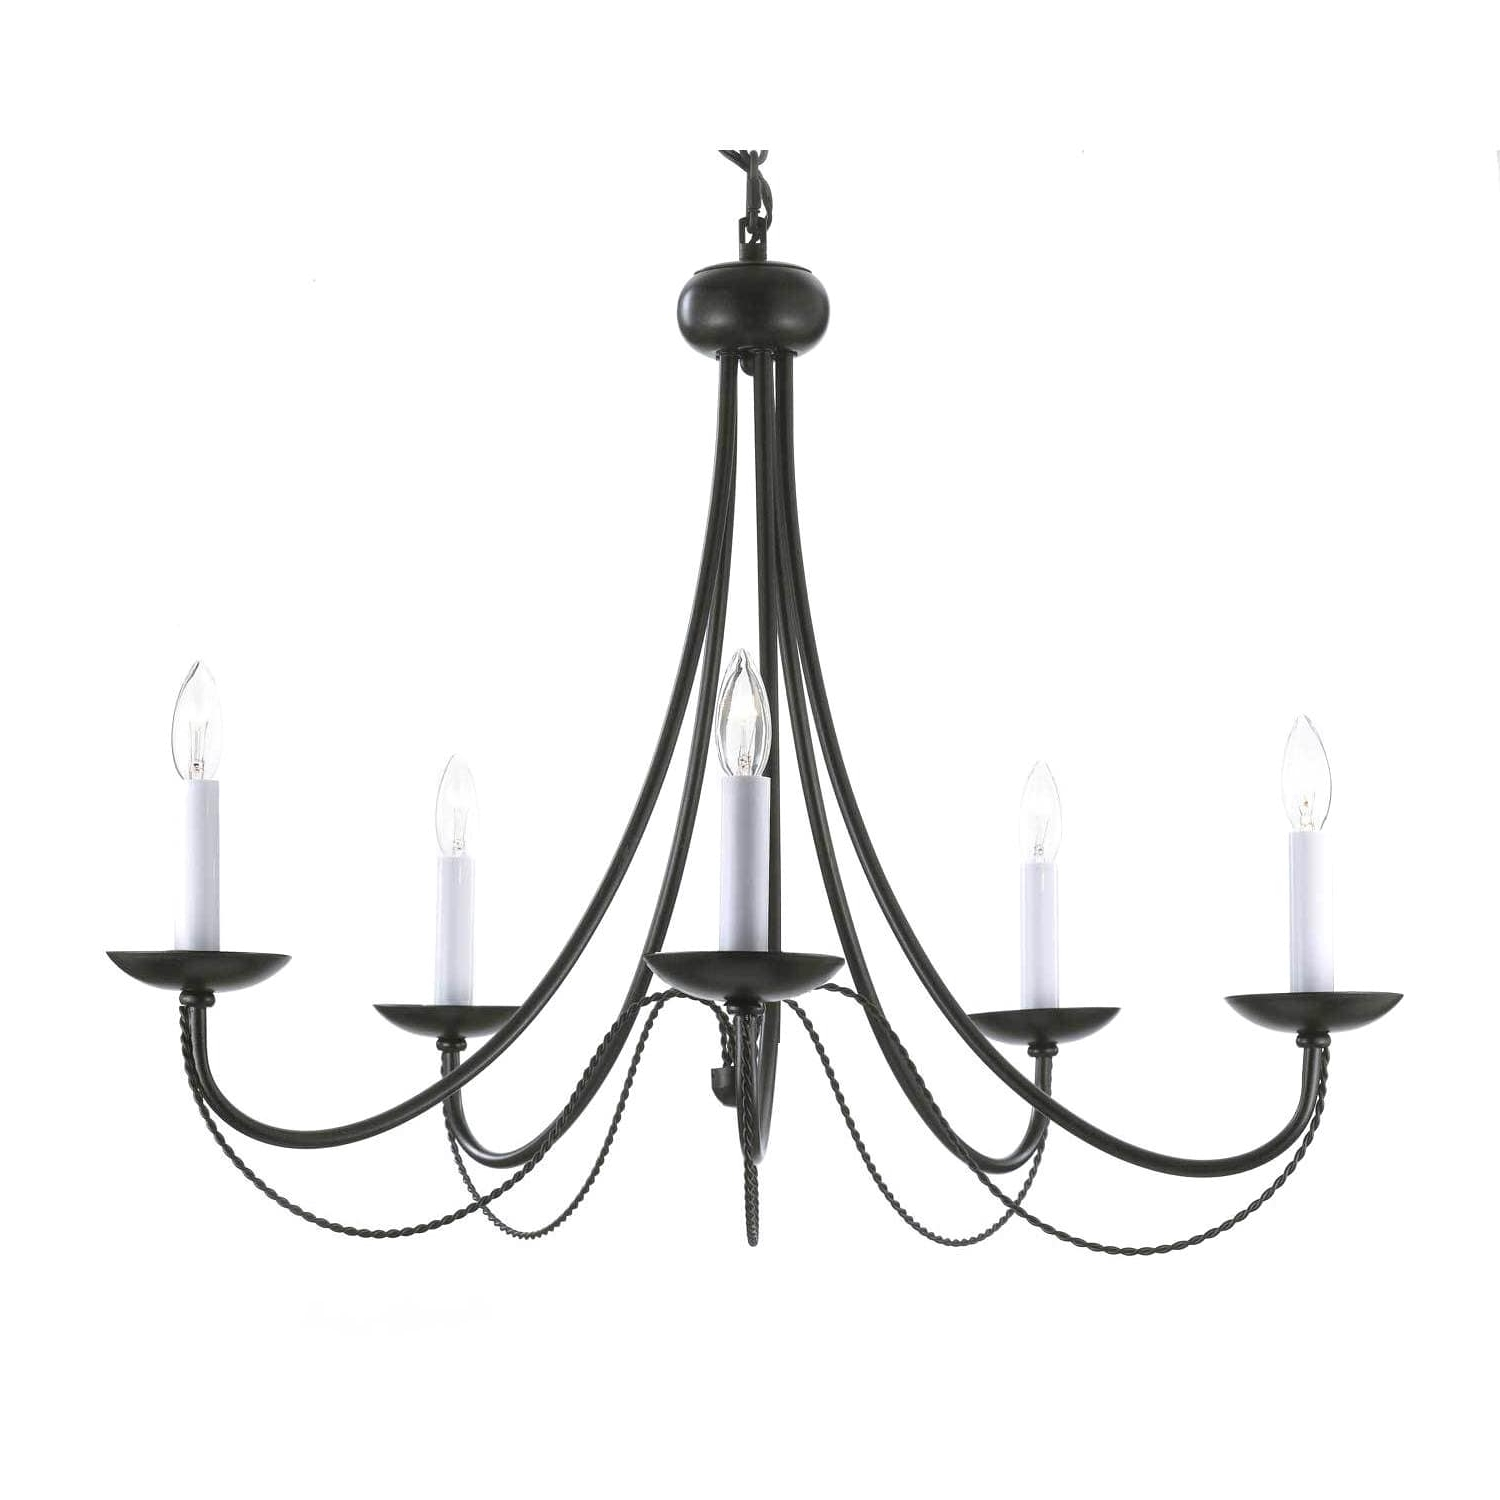 Gallery Versailles 5 Light Black Wrought Iron Chandelier – Free Inside Well Known Wrought Iron Chandeliers (View 5 of 20)